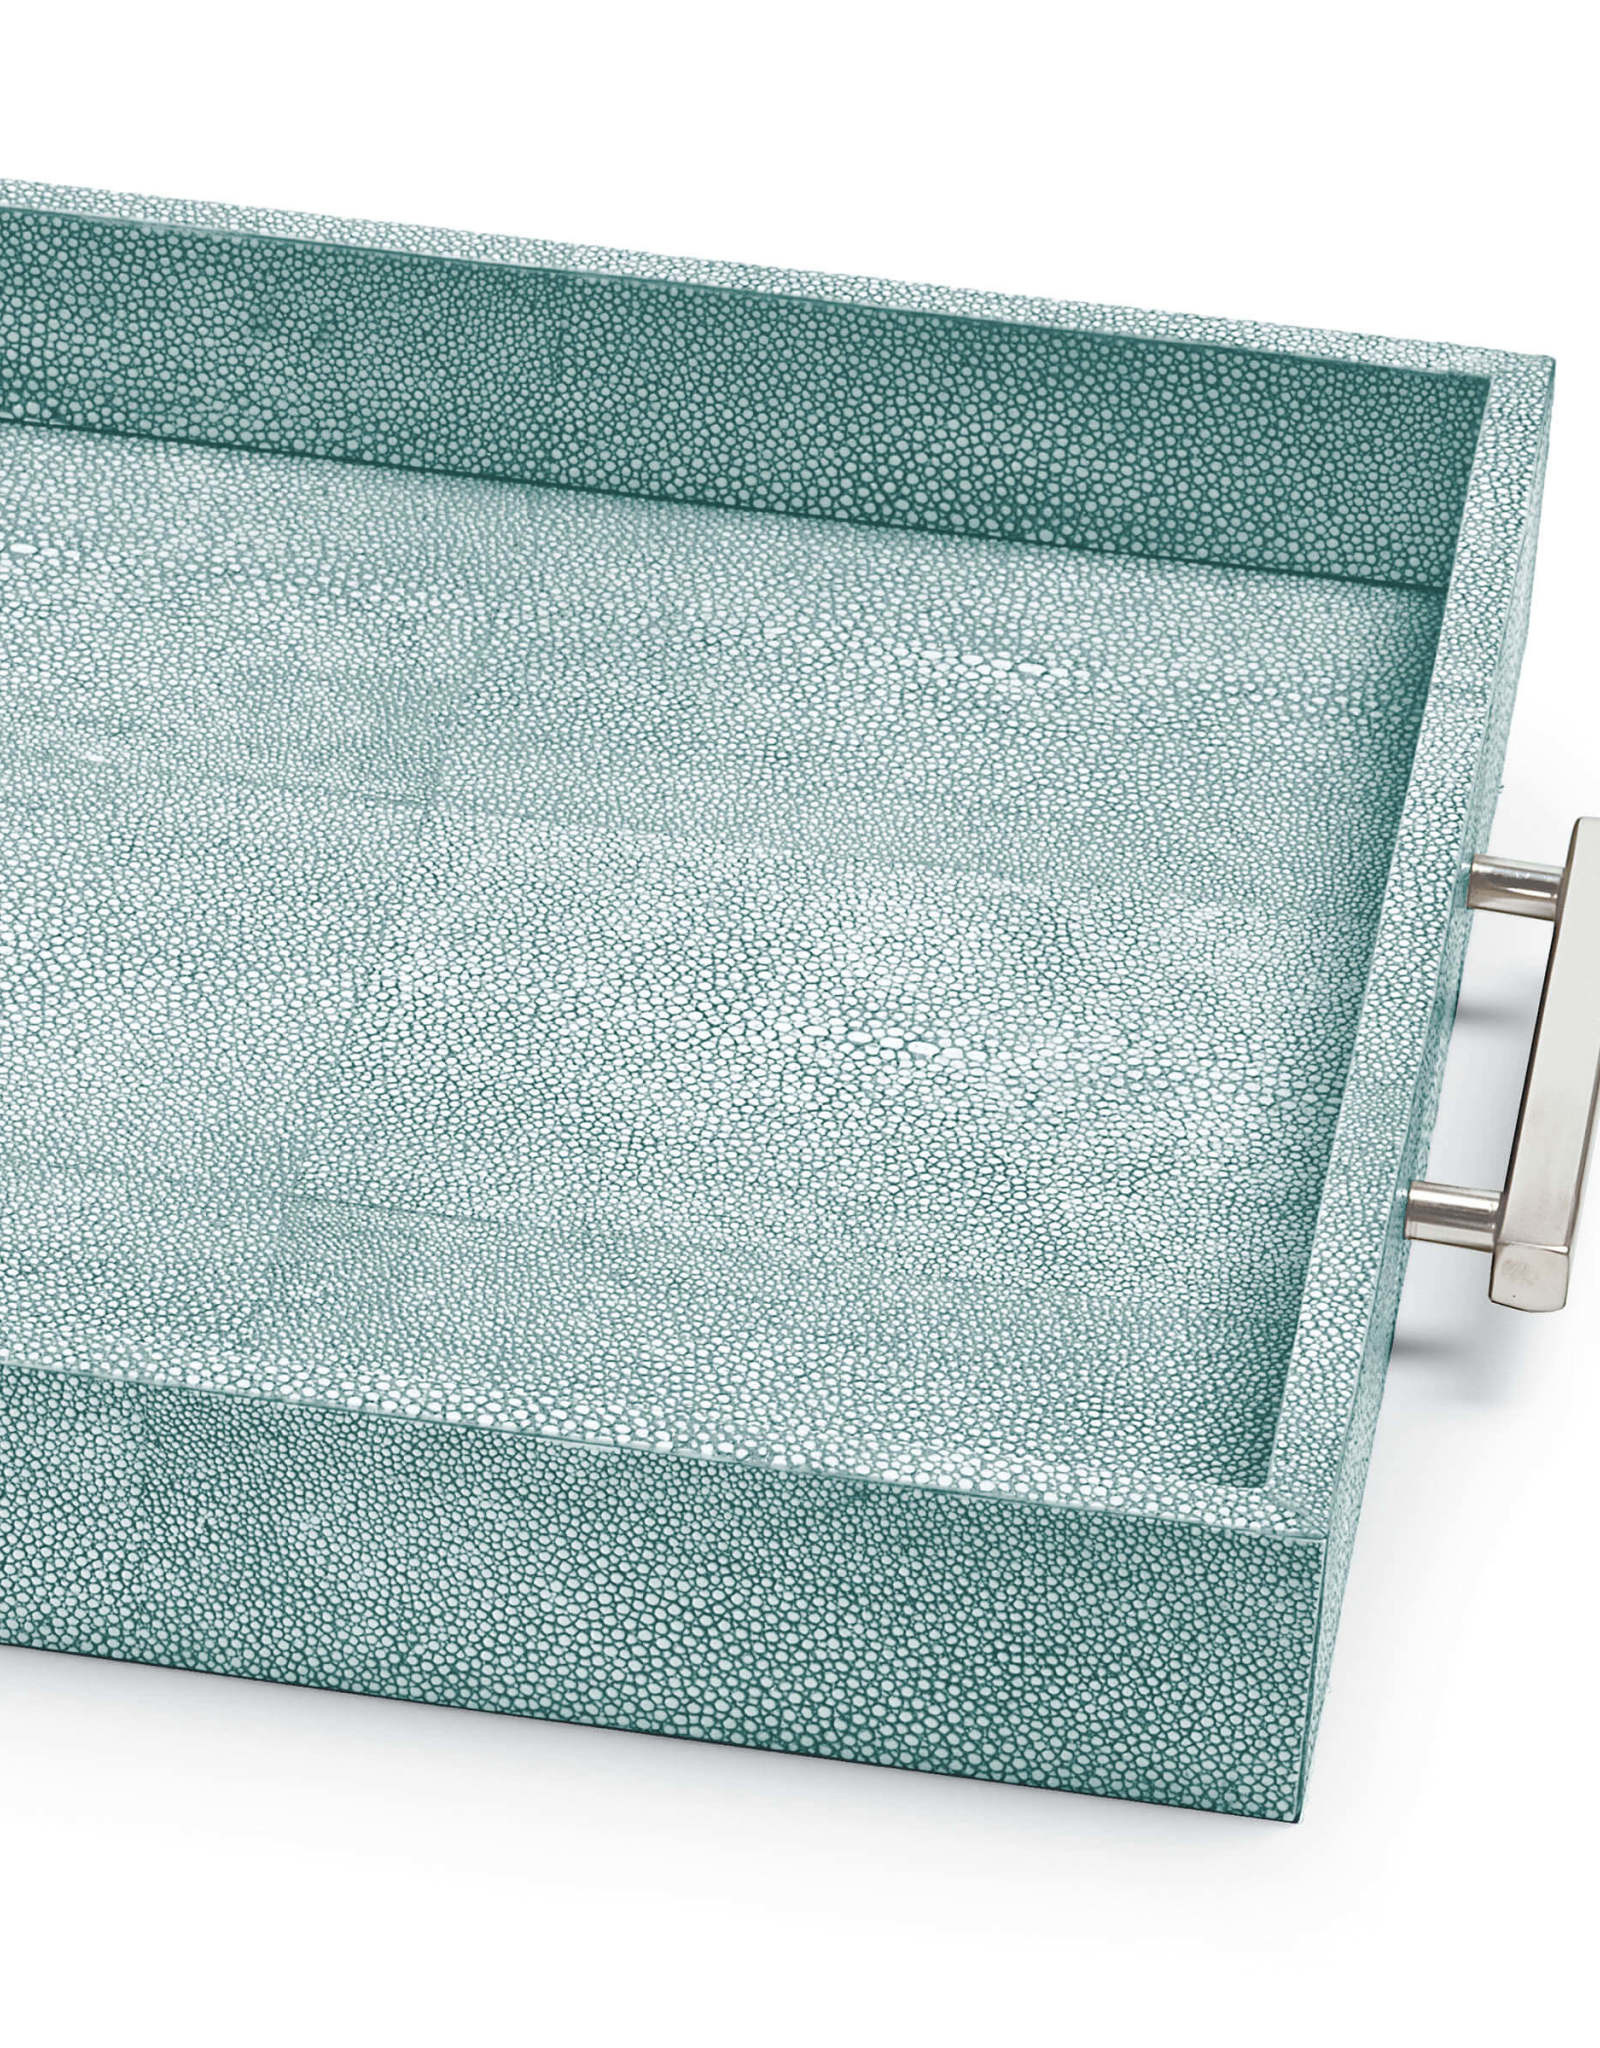 Regina Andrew Design Shagreen Rectangle Tray (Turquoise)